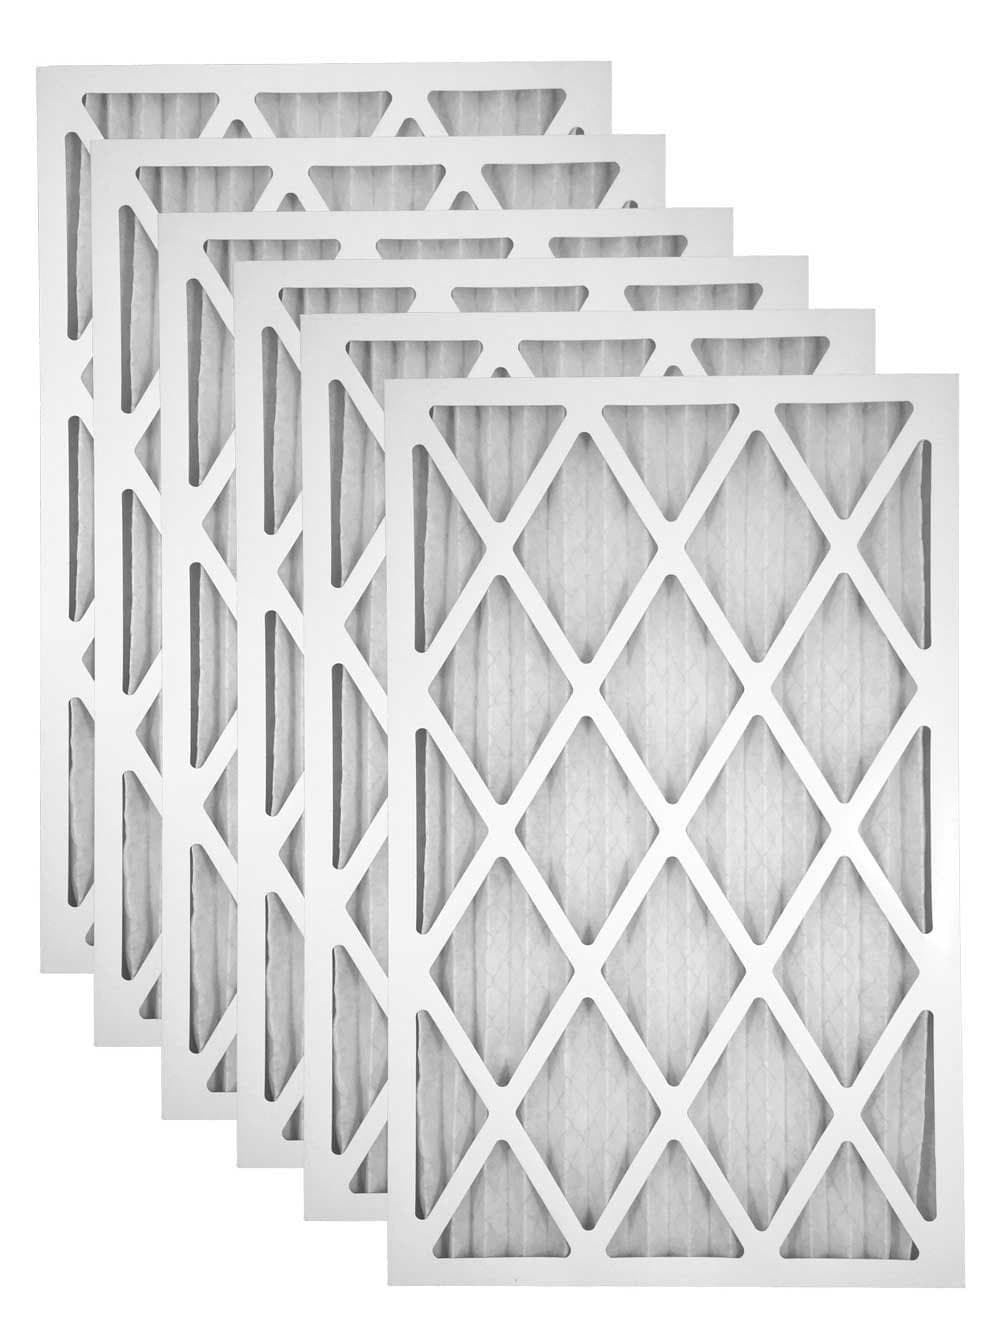 14x18x1 Merv 11 AC Furnace Filter - Case of 6